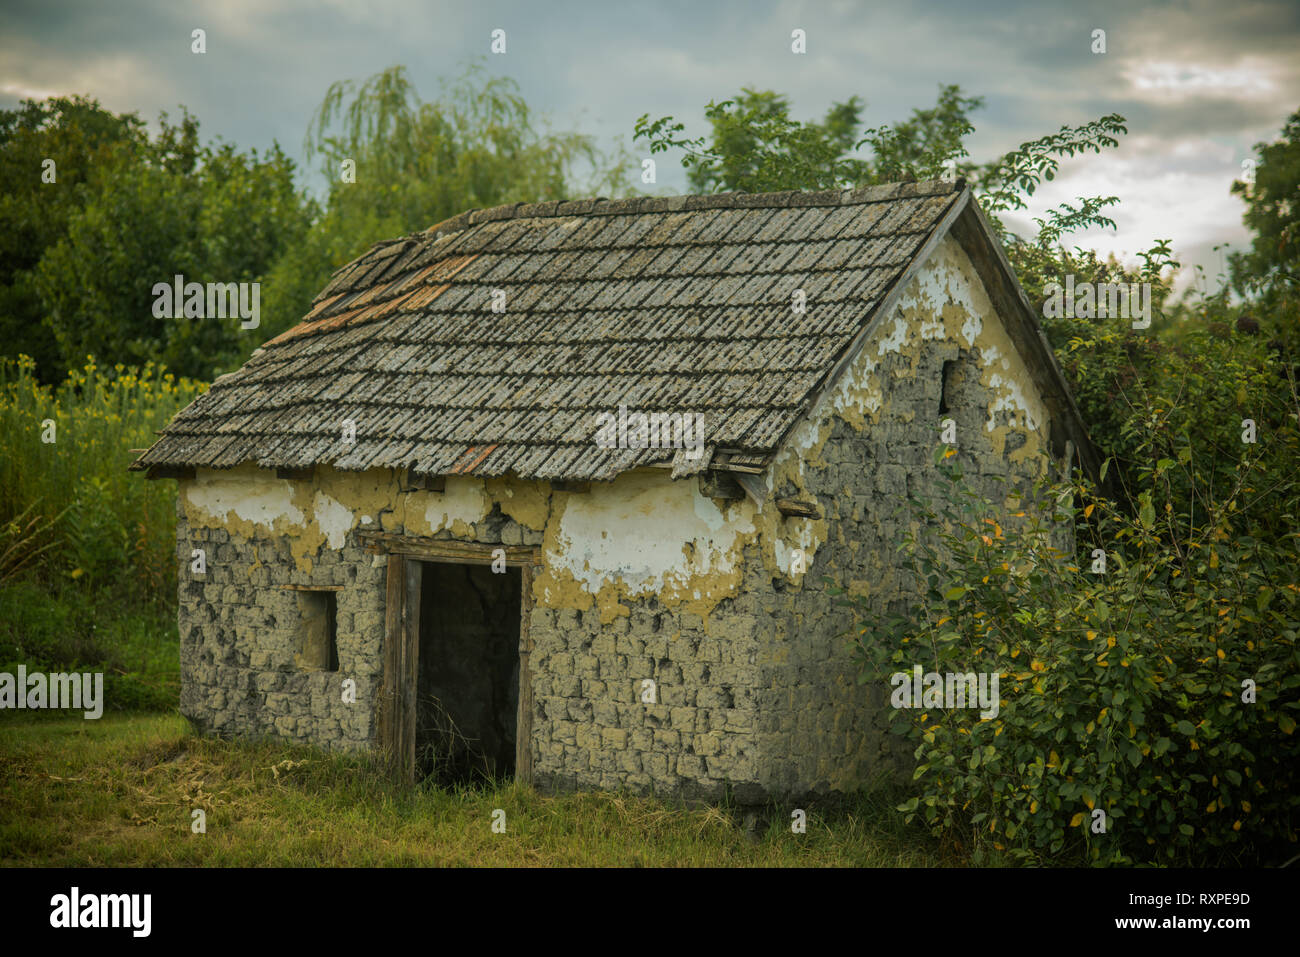 Decay, decline, ruins - Stock Image